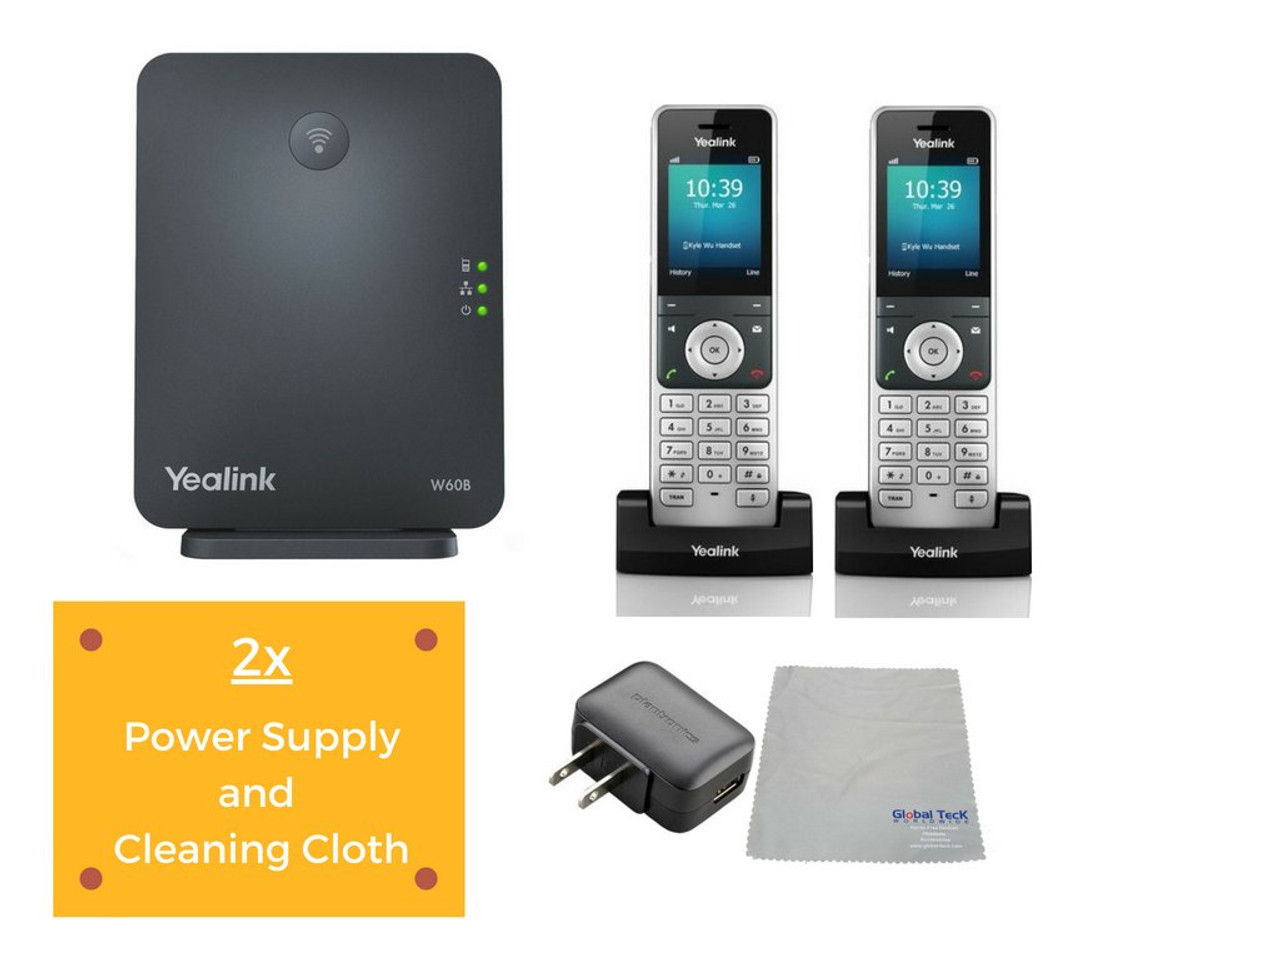 Yealink Cordless Phones Office W60 IP Bundle | DECT Handset, Base Unit,  Power Supply (Yealink W60B DECT Base and 2 Handsets) | #YEA-W60P-VB2